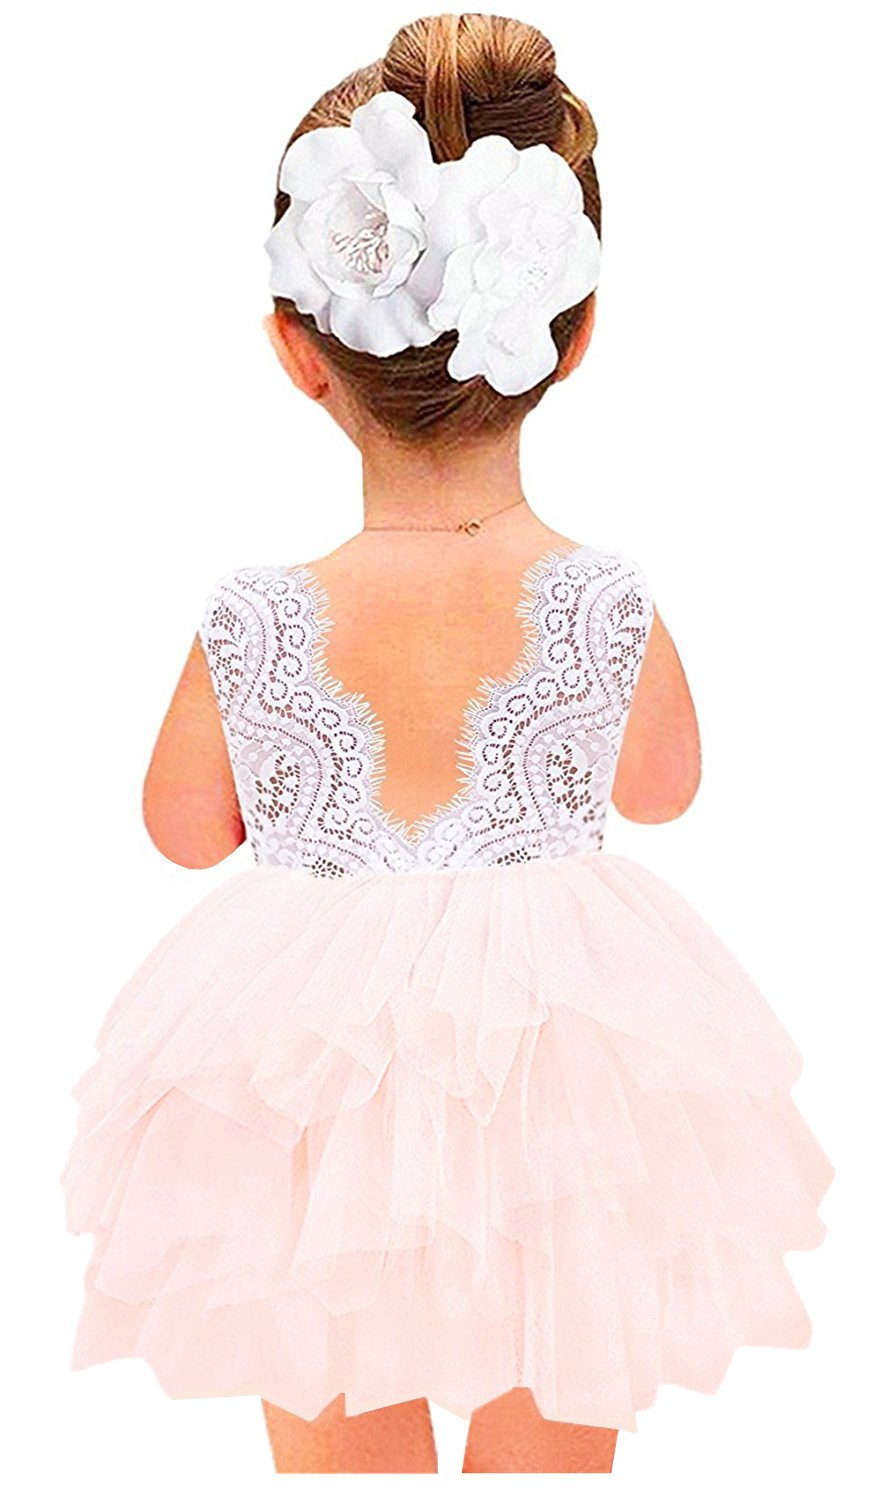 2Bunnies Girl Baby Girl Beaded Backless Lace Back Tutu Tulle Flower Girl Party Dress (Pink Sleeveless Short, 12 Months)